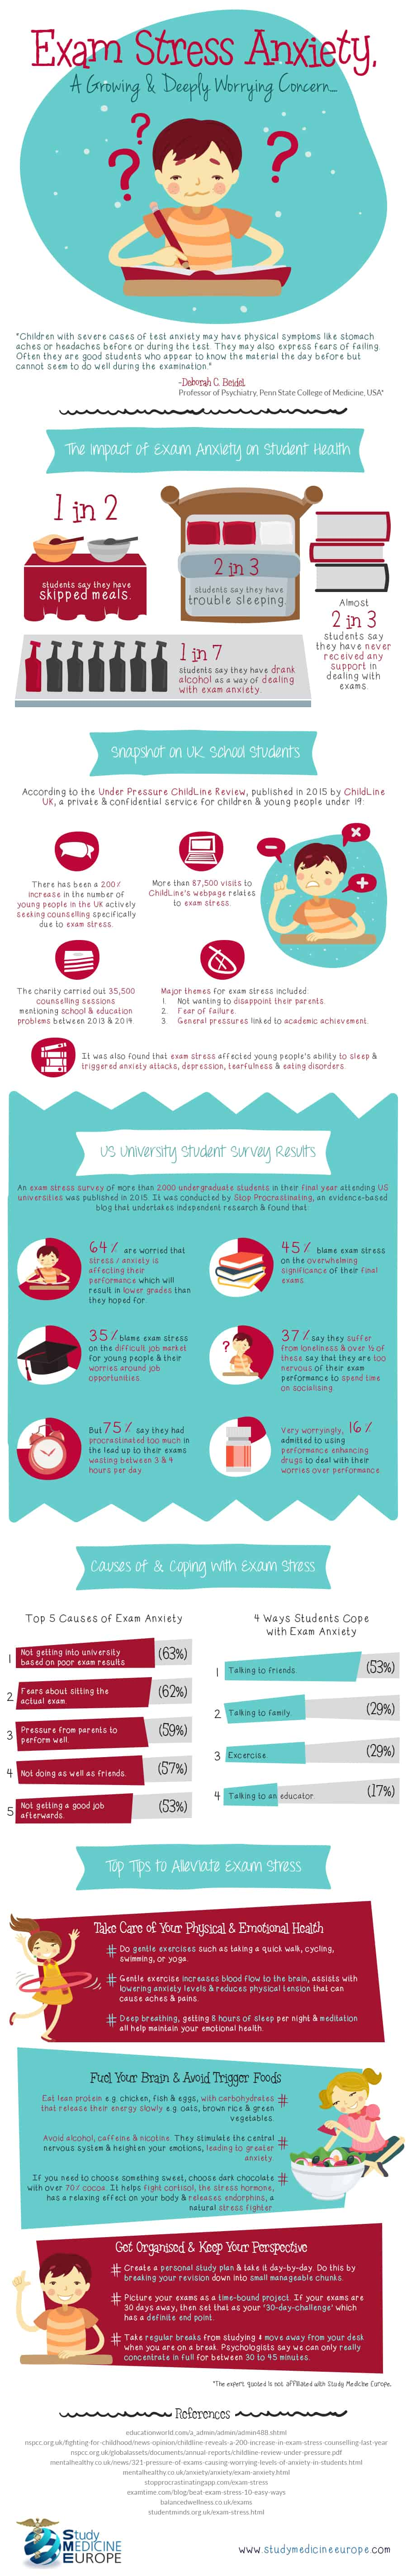 Exam Stress Anxiety Infographic